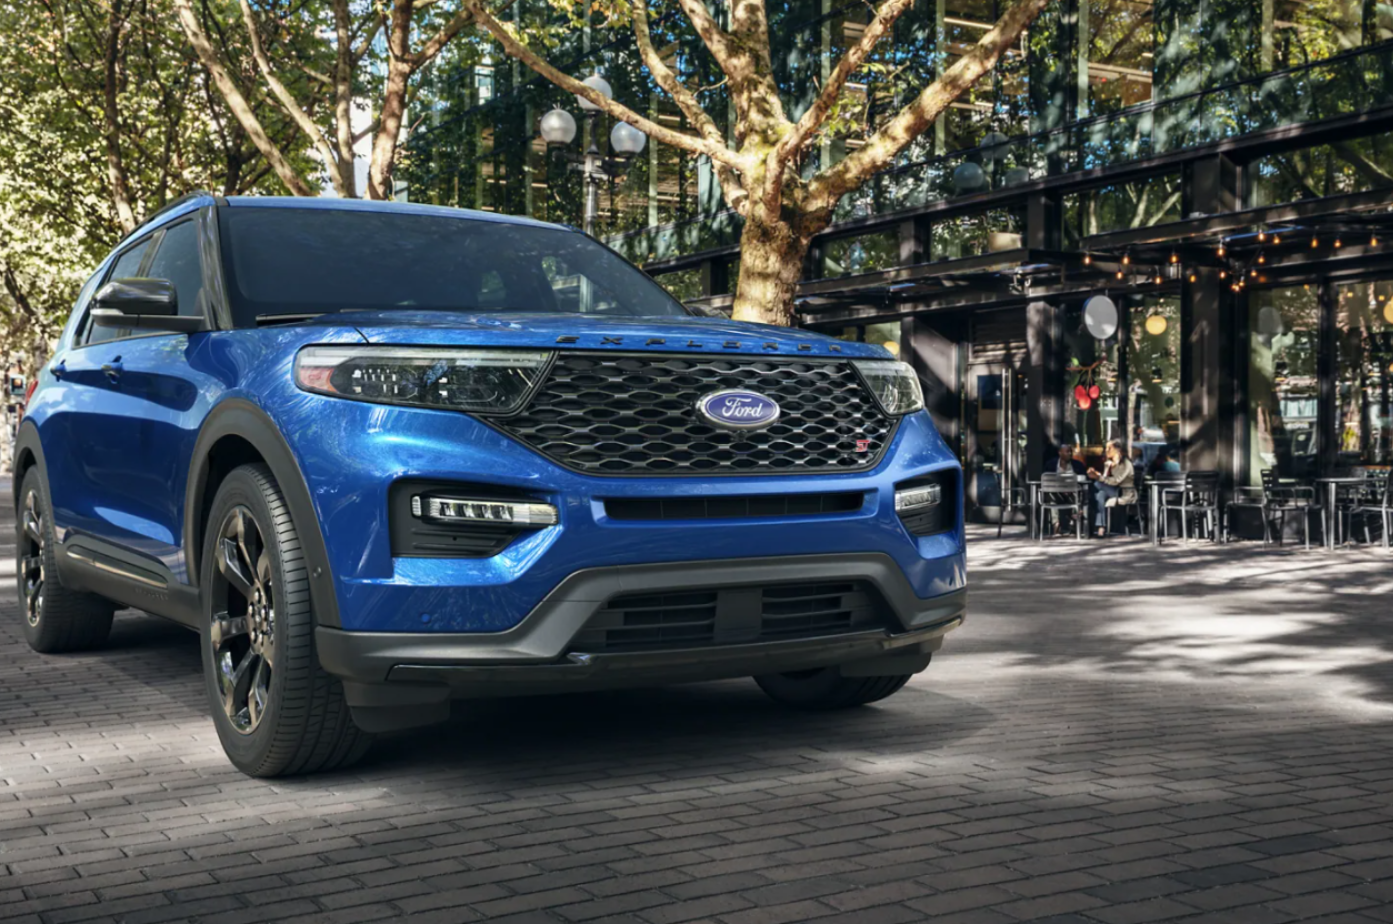 A blue 2021 Ford Explorer looking both rugged and stylish in front of a downtown bistro.